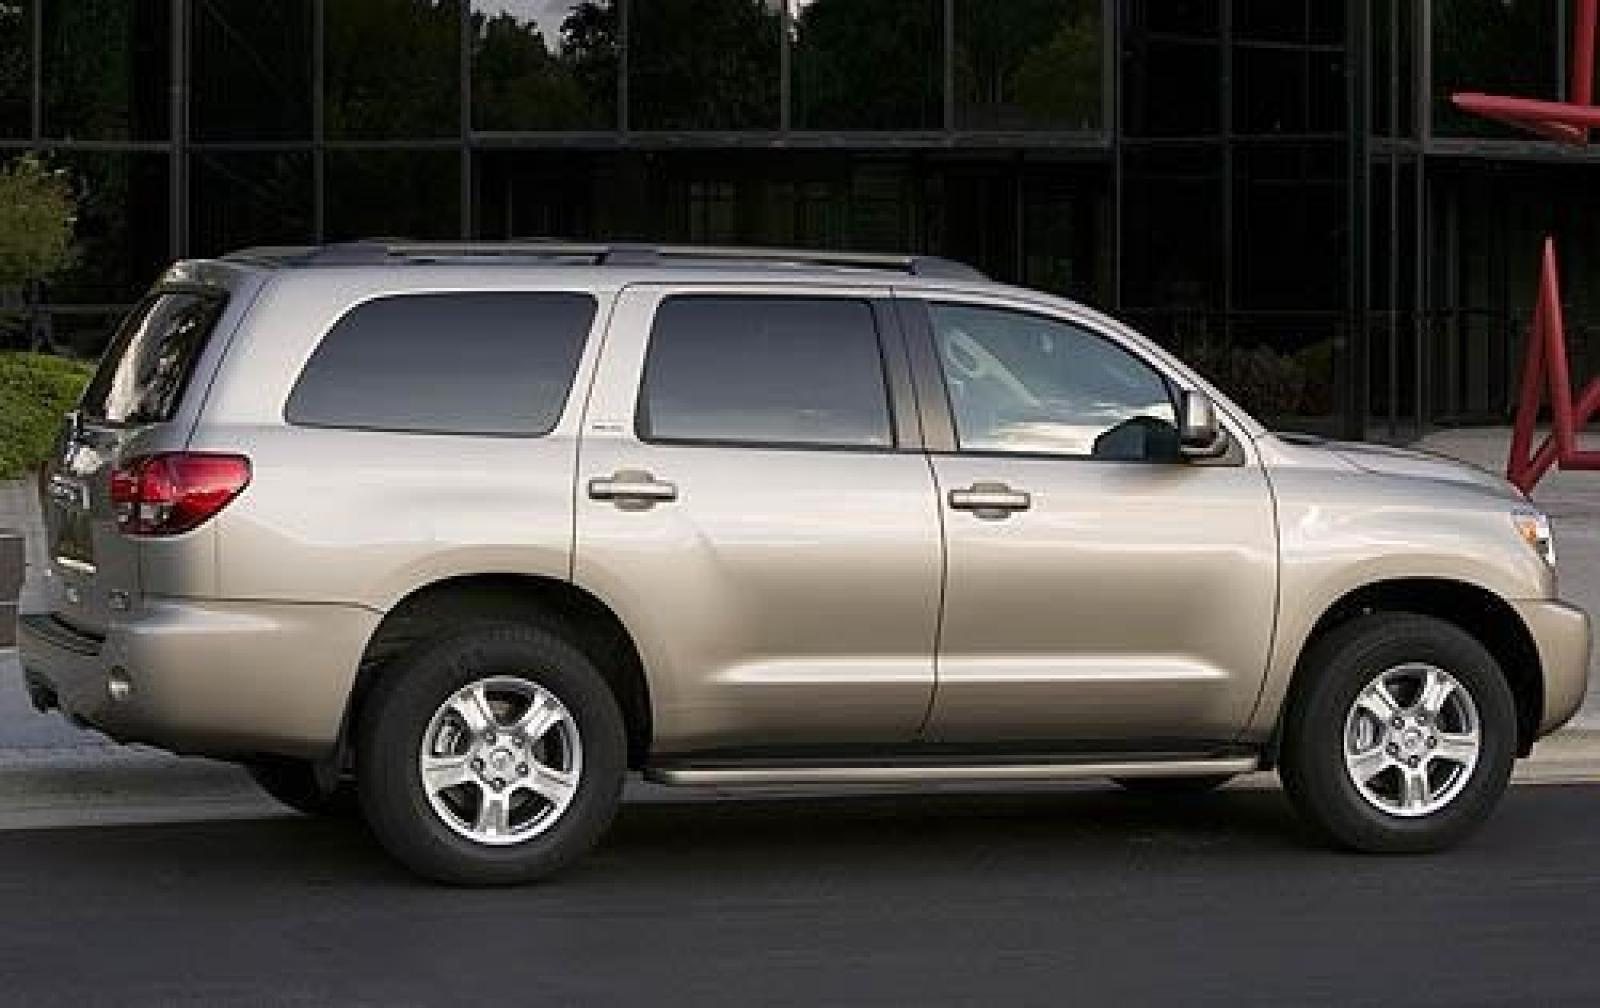 2010 toyota sequoia information and photos zombiedrive. Black Bedroom Furniture Sets. Home Design Ideas